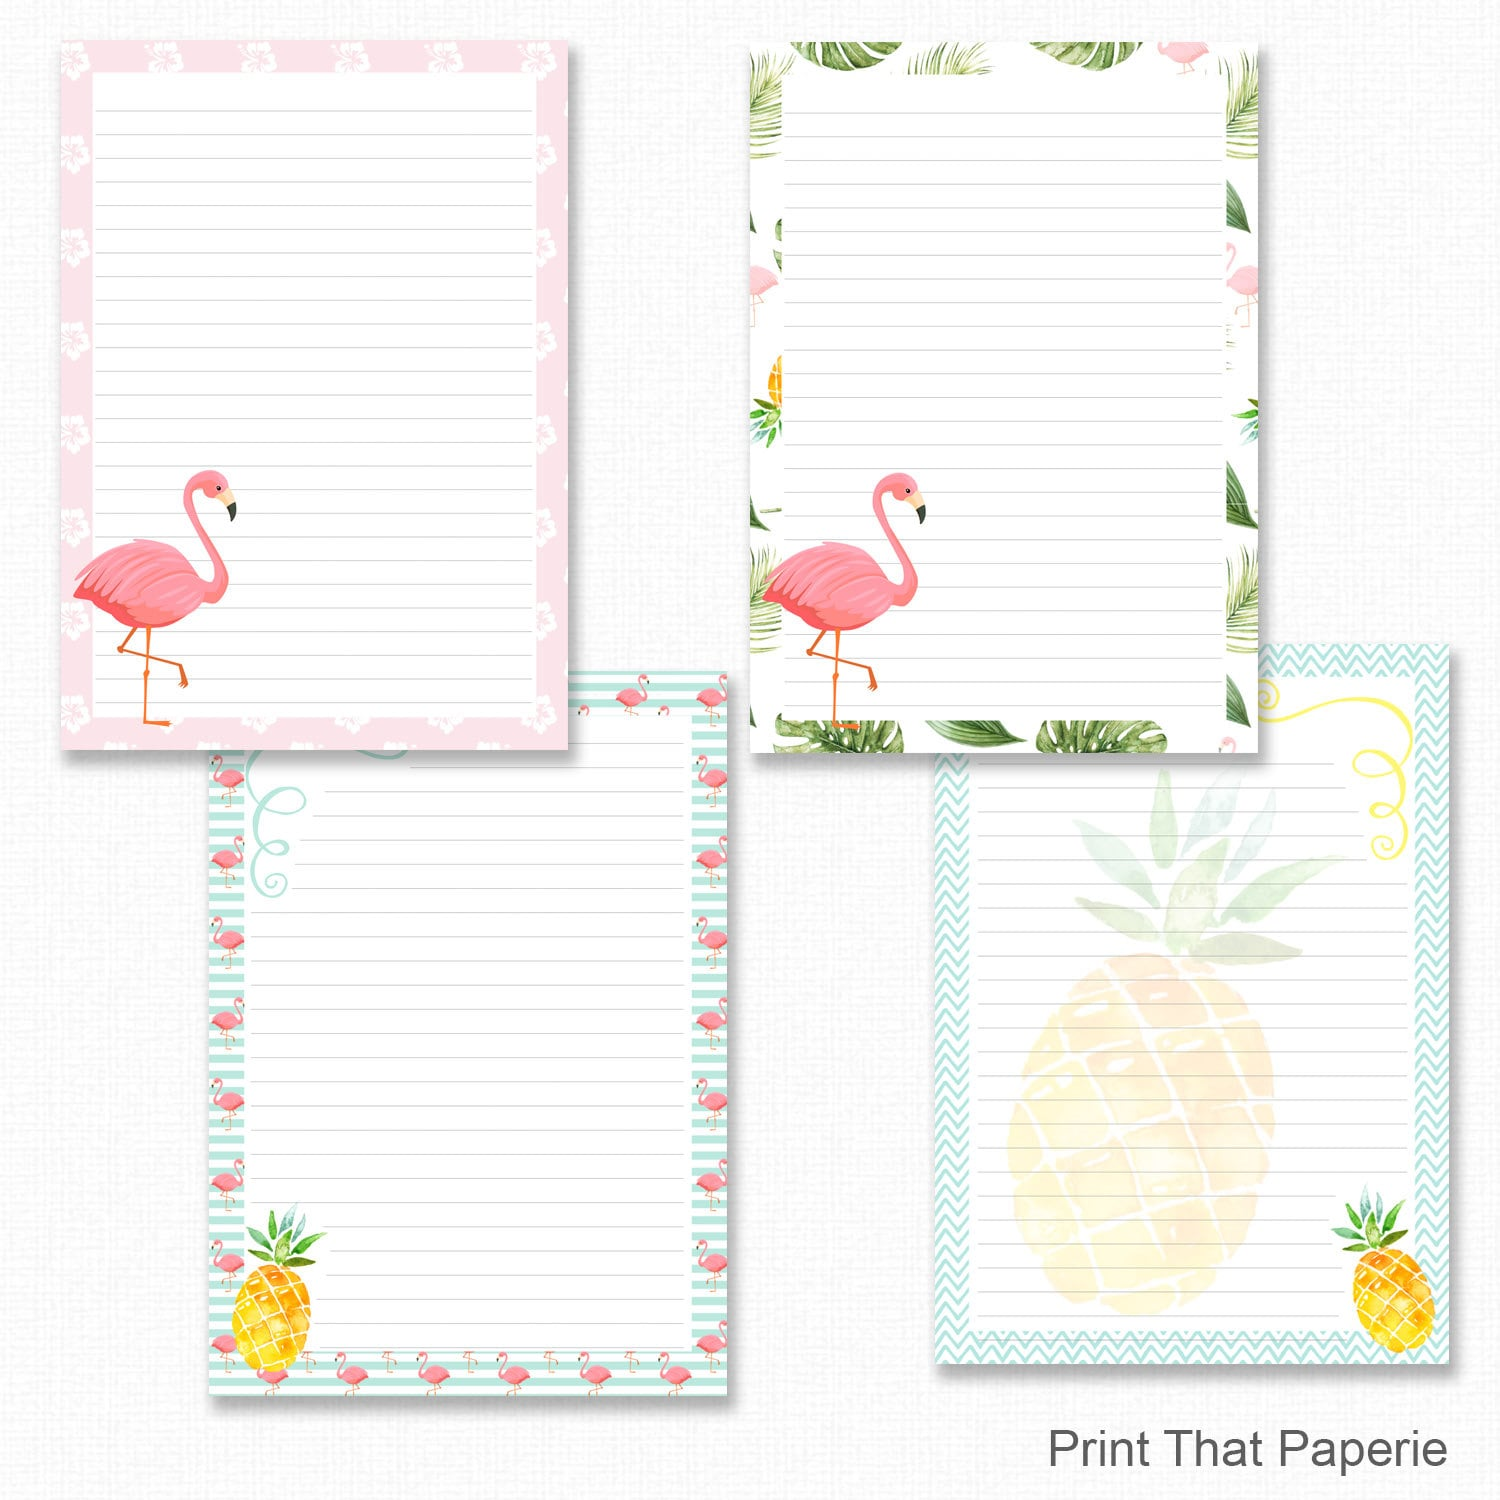 photograph regarding Printable Note Paper named Flamingo Printable Creating Paper - Stationary Paper - Letter Producing Preset - Flamingo Be aware Paper - Printable Magazine Web pages, Sbooking Paper